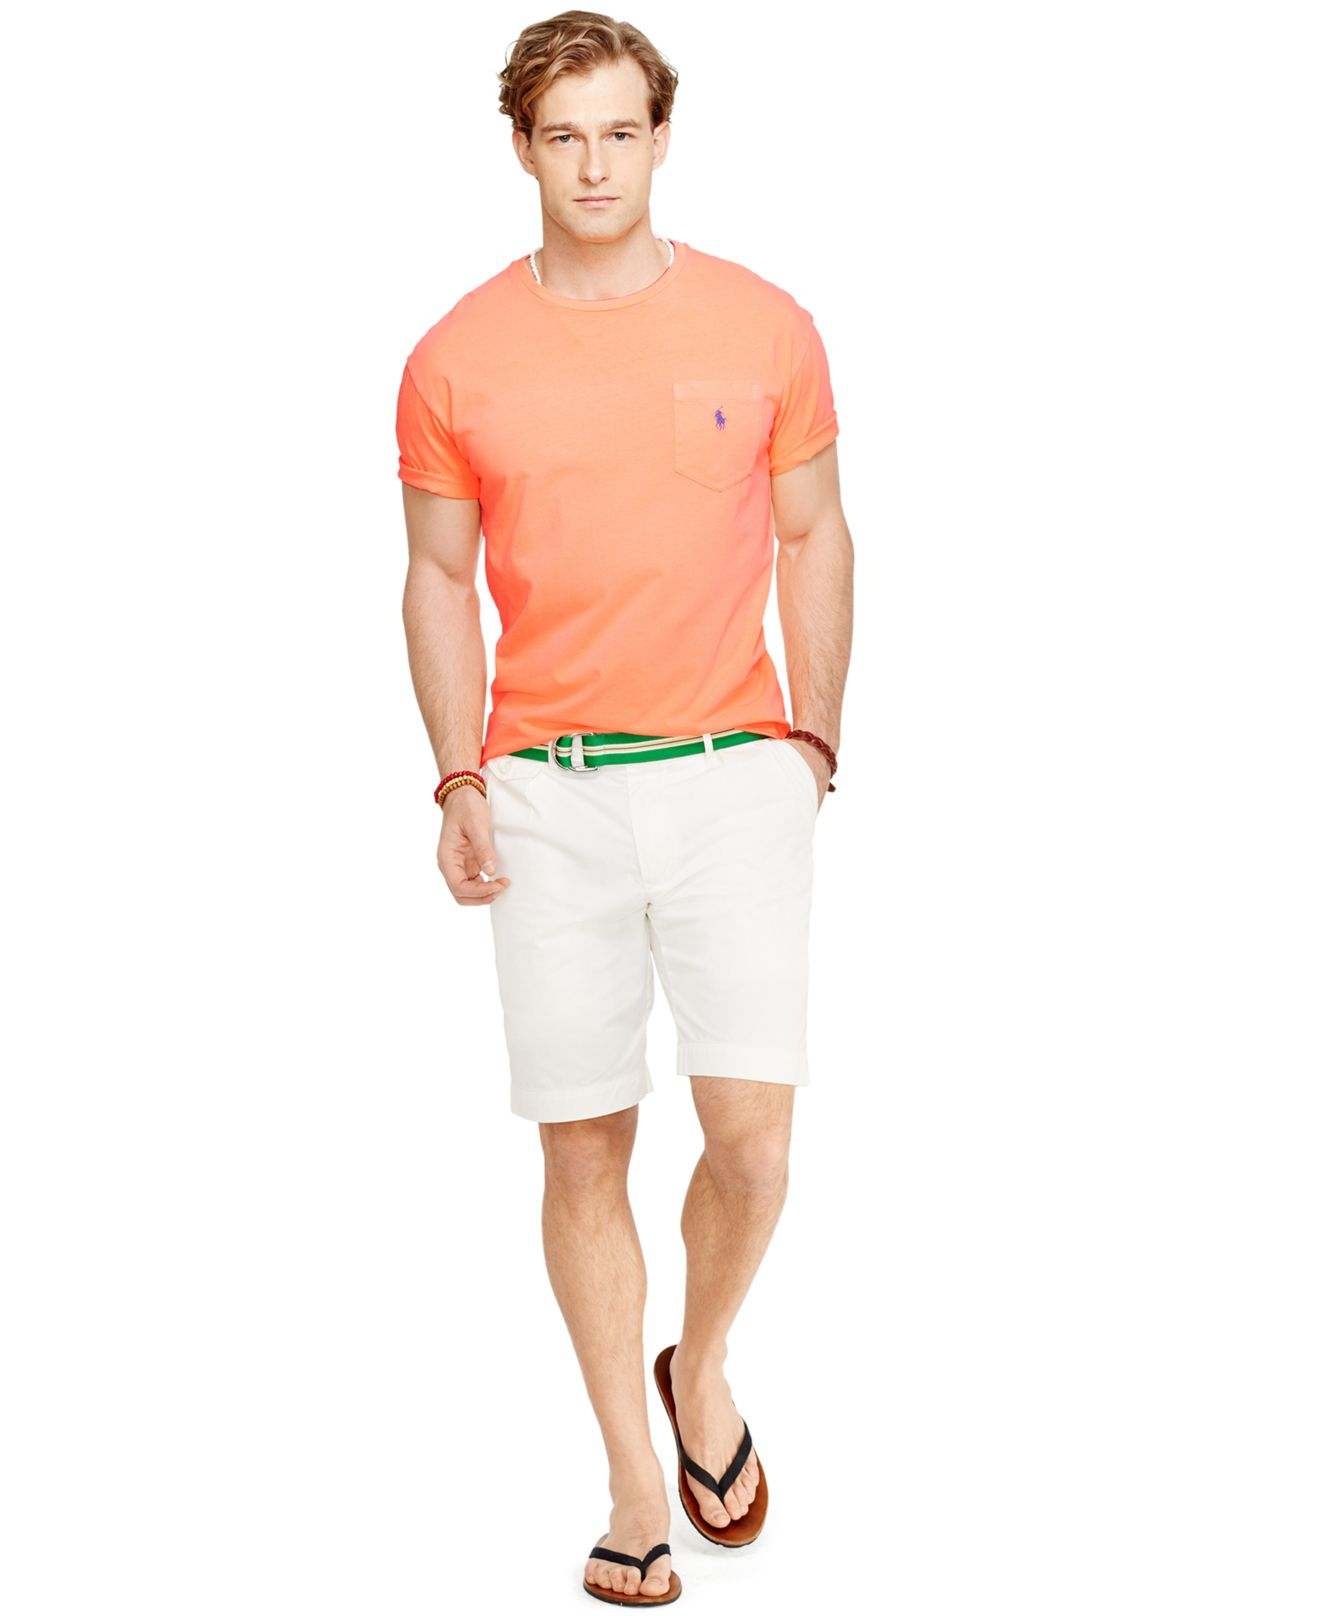 Polo ralph lauren classic fit neon jersey pocket crew neck for Polo t shirts with pocket online